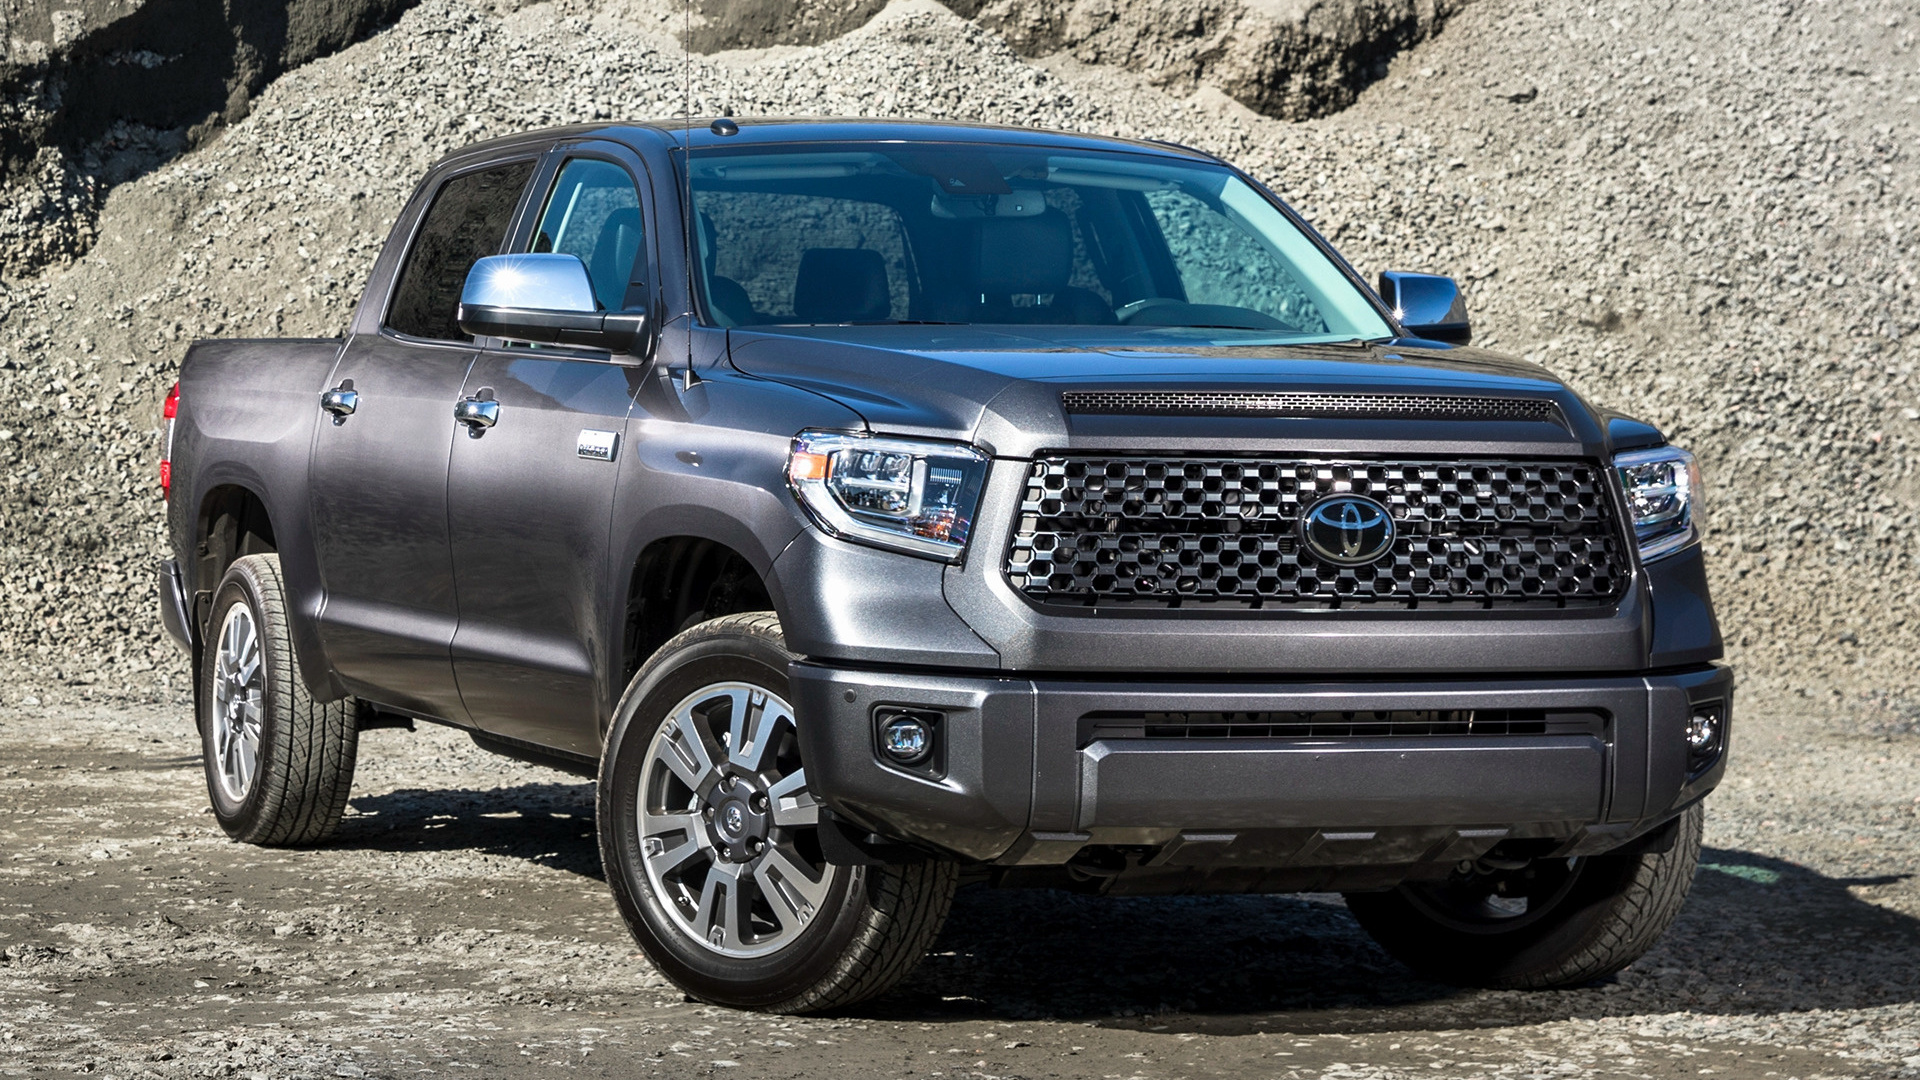 Trd Pro Tundra >> 2018 Toyota Tundra Platinum CrewMax - Wallpapers and HD ...